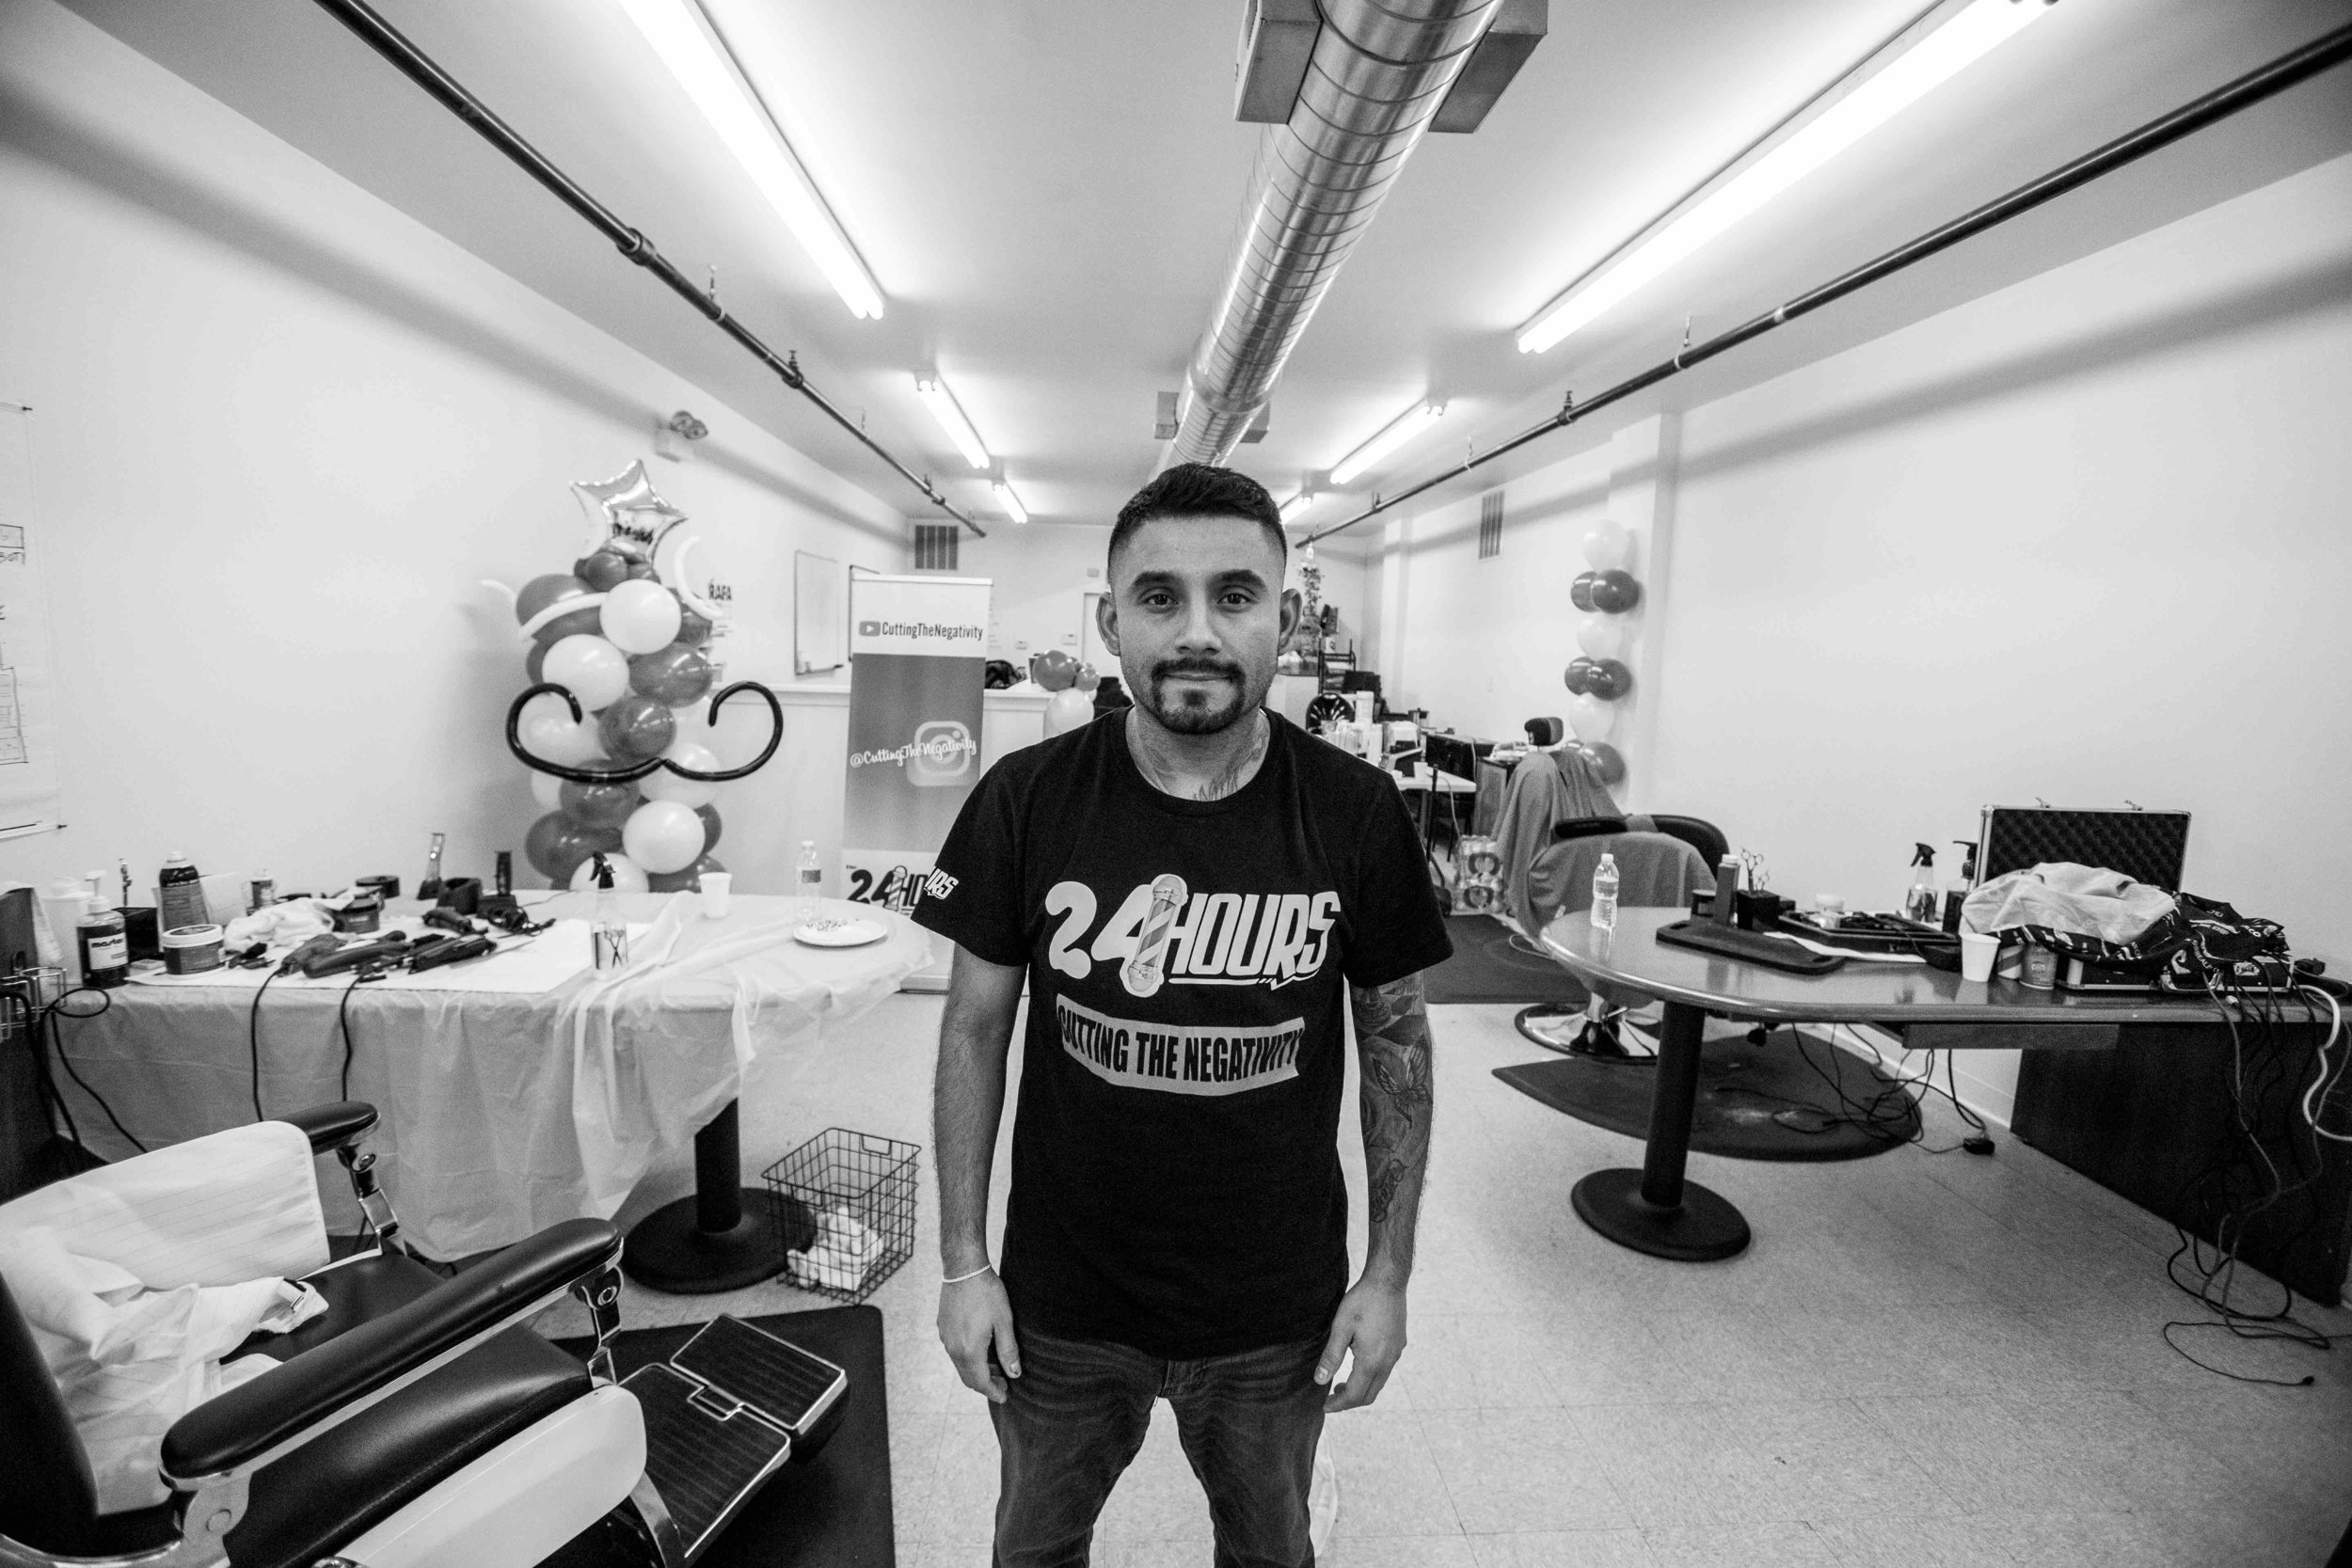 Since becoming a shop owner of Seven26, located in Cicero, one of the few Latino communities near Chicago, Juan Acevedo has taken on the challenge to influence with positivity and encourage other barbers across Chicago to do the same in their communities. In 2014, Juan launched the very first 24 hour Chicago barber charity event,  #CuttingtheNegativity , which helped fund his former elementary school.  He created the event to challenge local barbers to donate their time and money by cutting hair for free. For almost five years, Juan and his no negativity movement have traveled across the country, asking barbers to put their egos and wallets aside and cut hair out of love. Due to violent headlines in Chicago he decided to bring  #CuttingtheNegativity  back home. The Latino business owner has set a new goal for himself, to make the barber charity event more than just a hashtag.